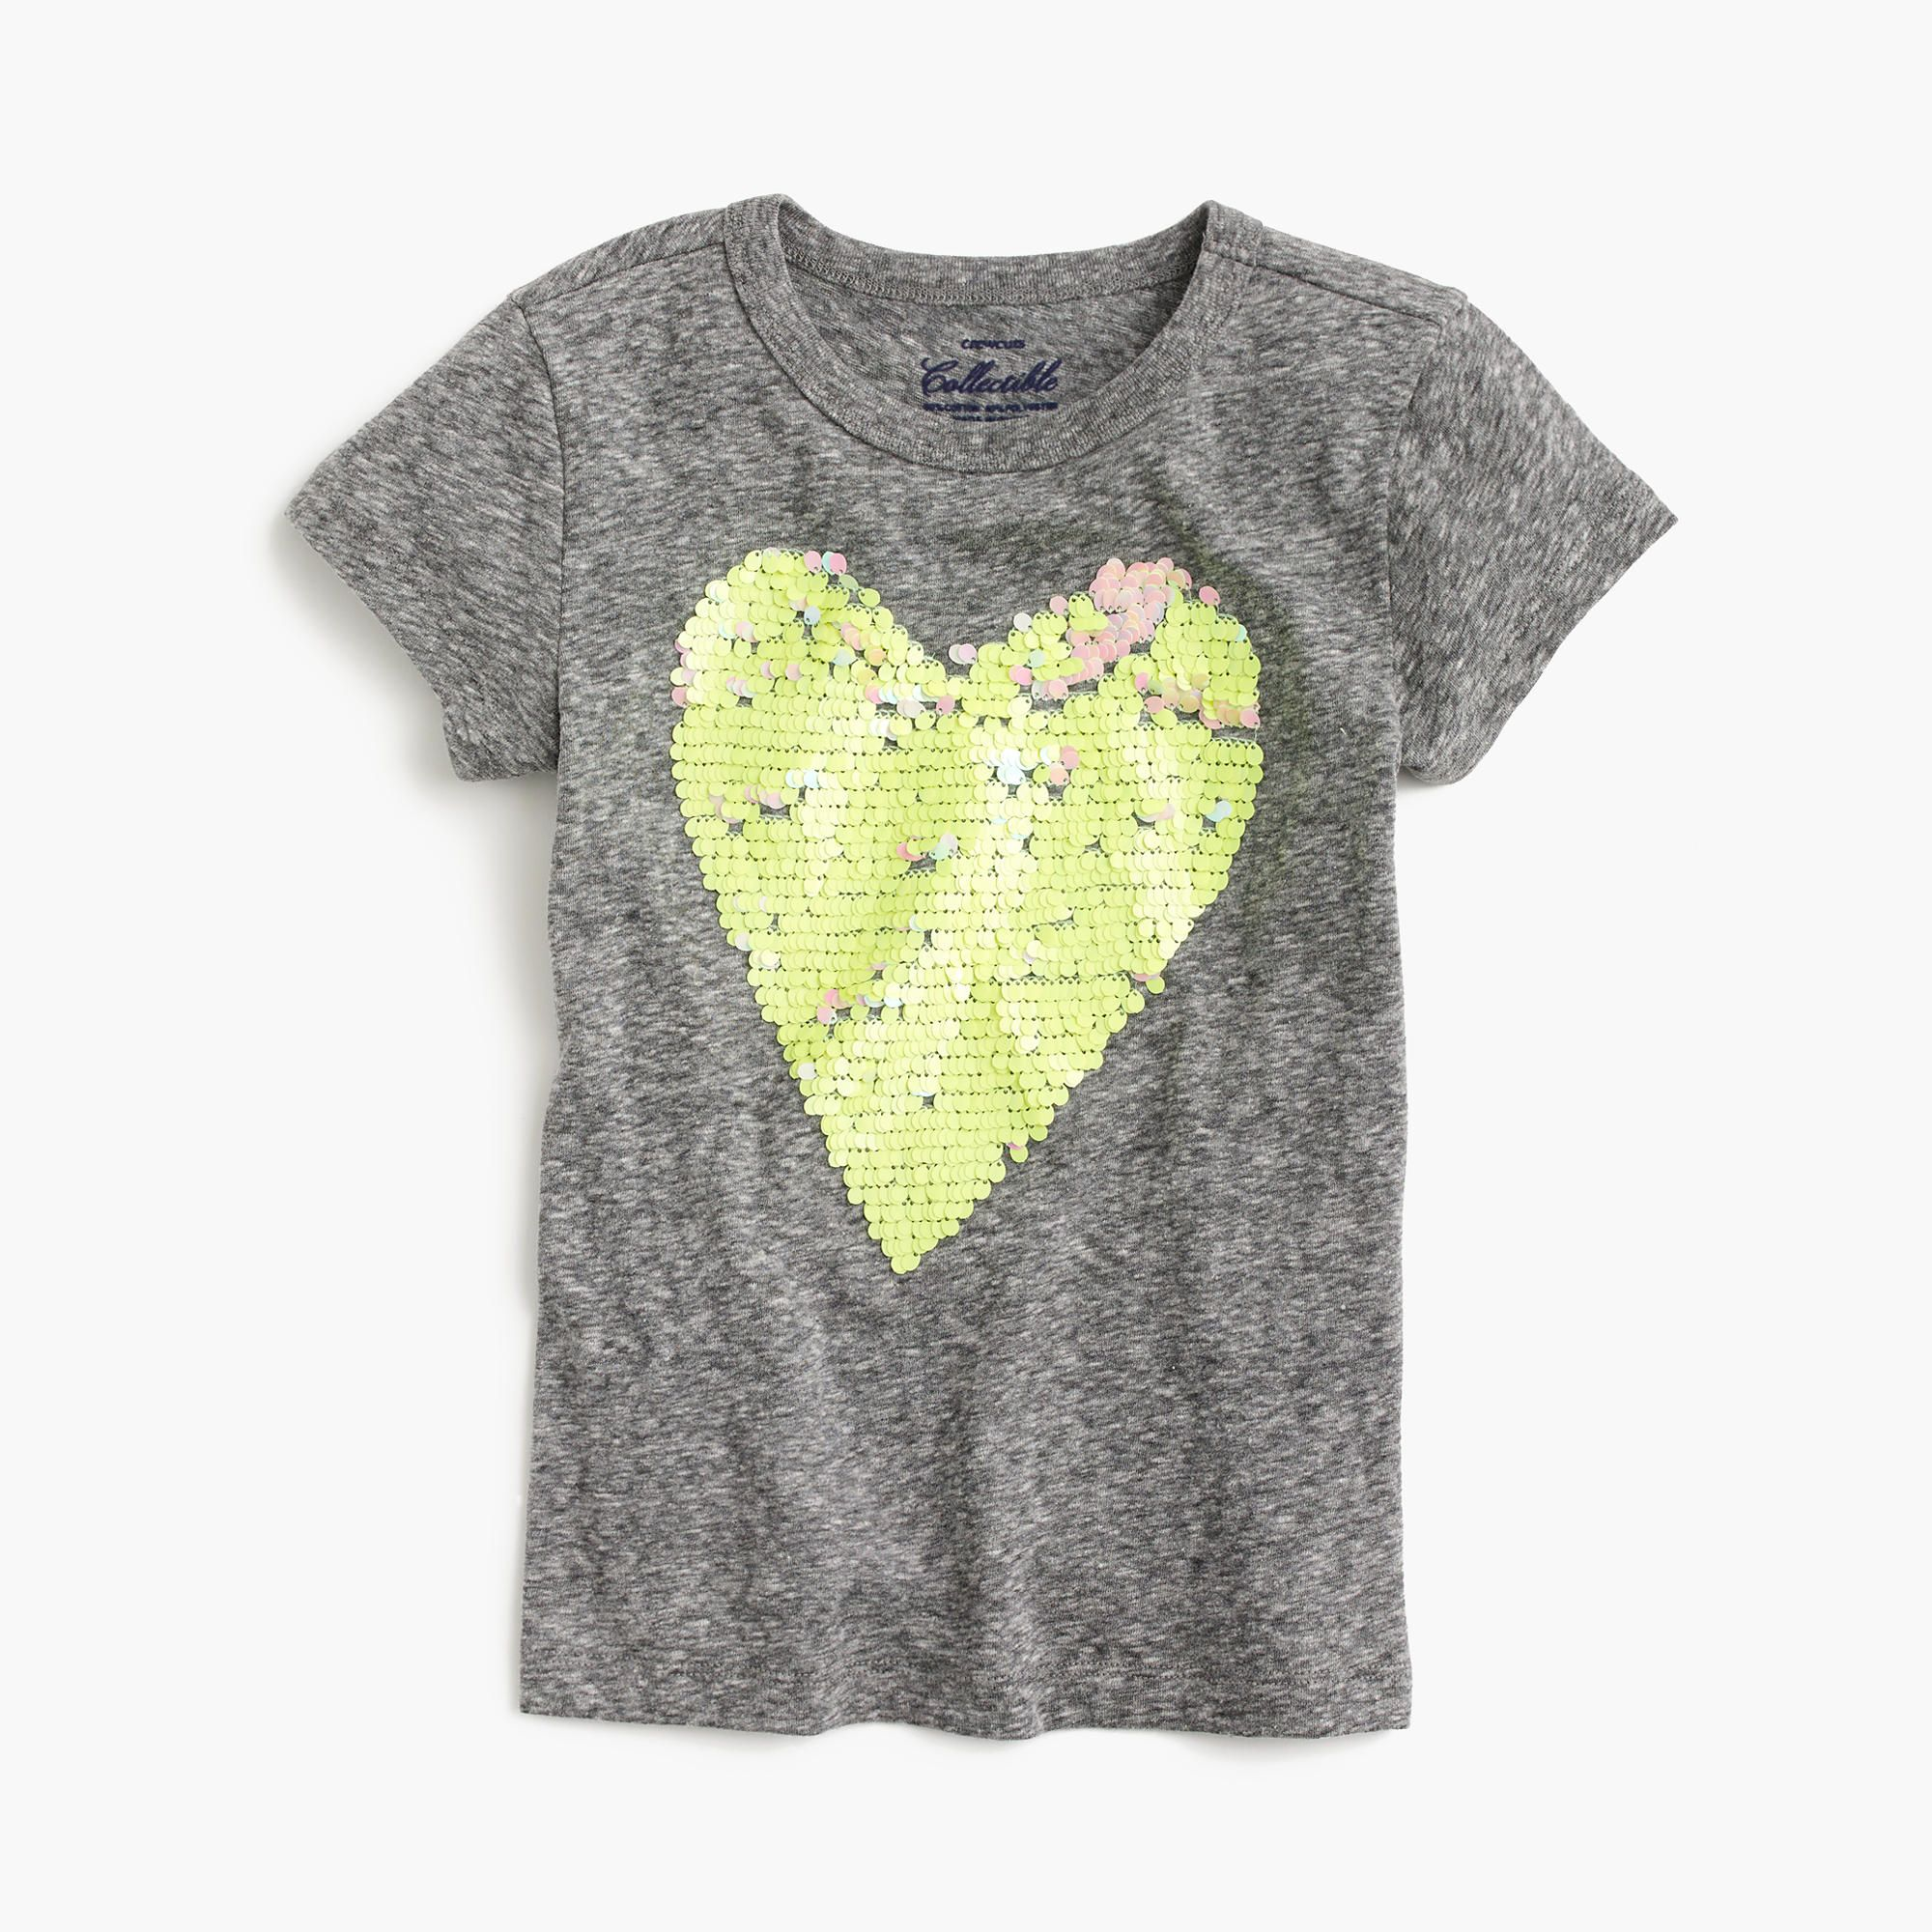 From our top-secret graphics lab to their closet, a soft tee featuring a magical color-changing heart (just brush the sequins up!), courtesy of the creative minds of our crewcuts designers. Cotton. Machine wash. Import. Sizes 2 and 3 feature glitter instead of sequins. Please note: Sequins are double-sided.